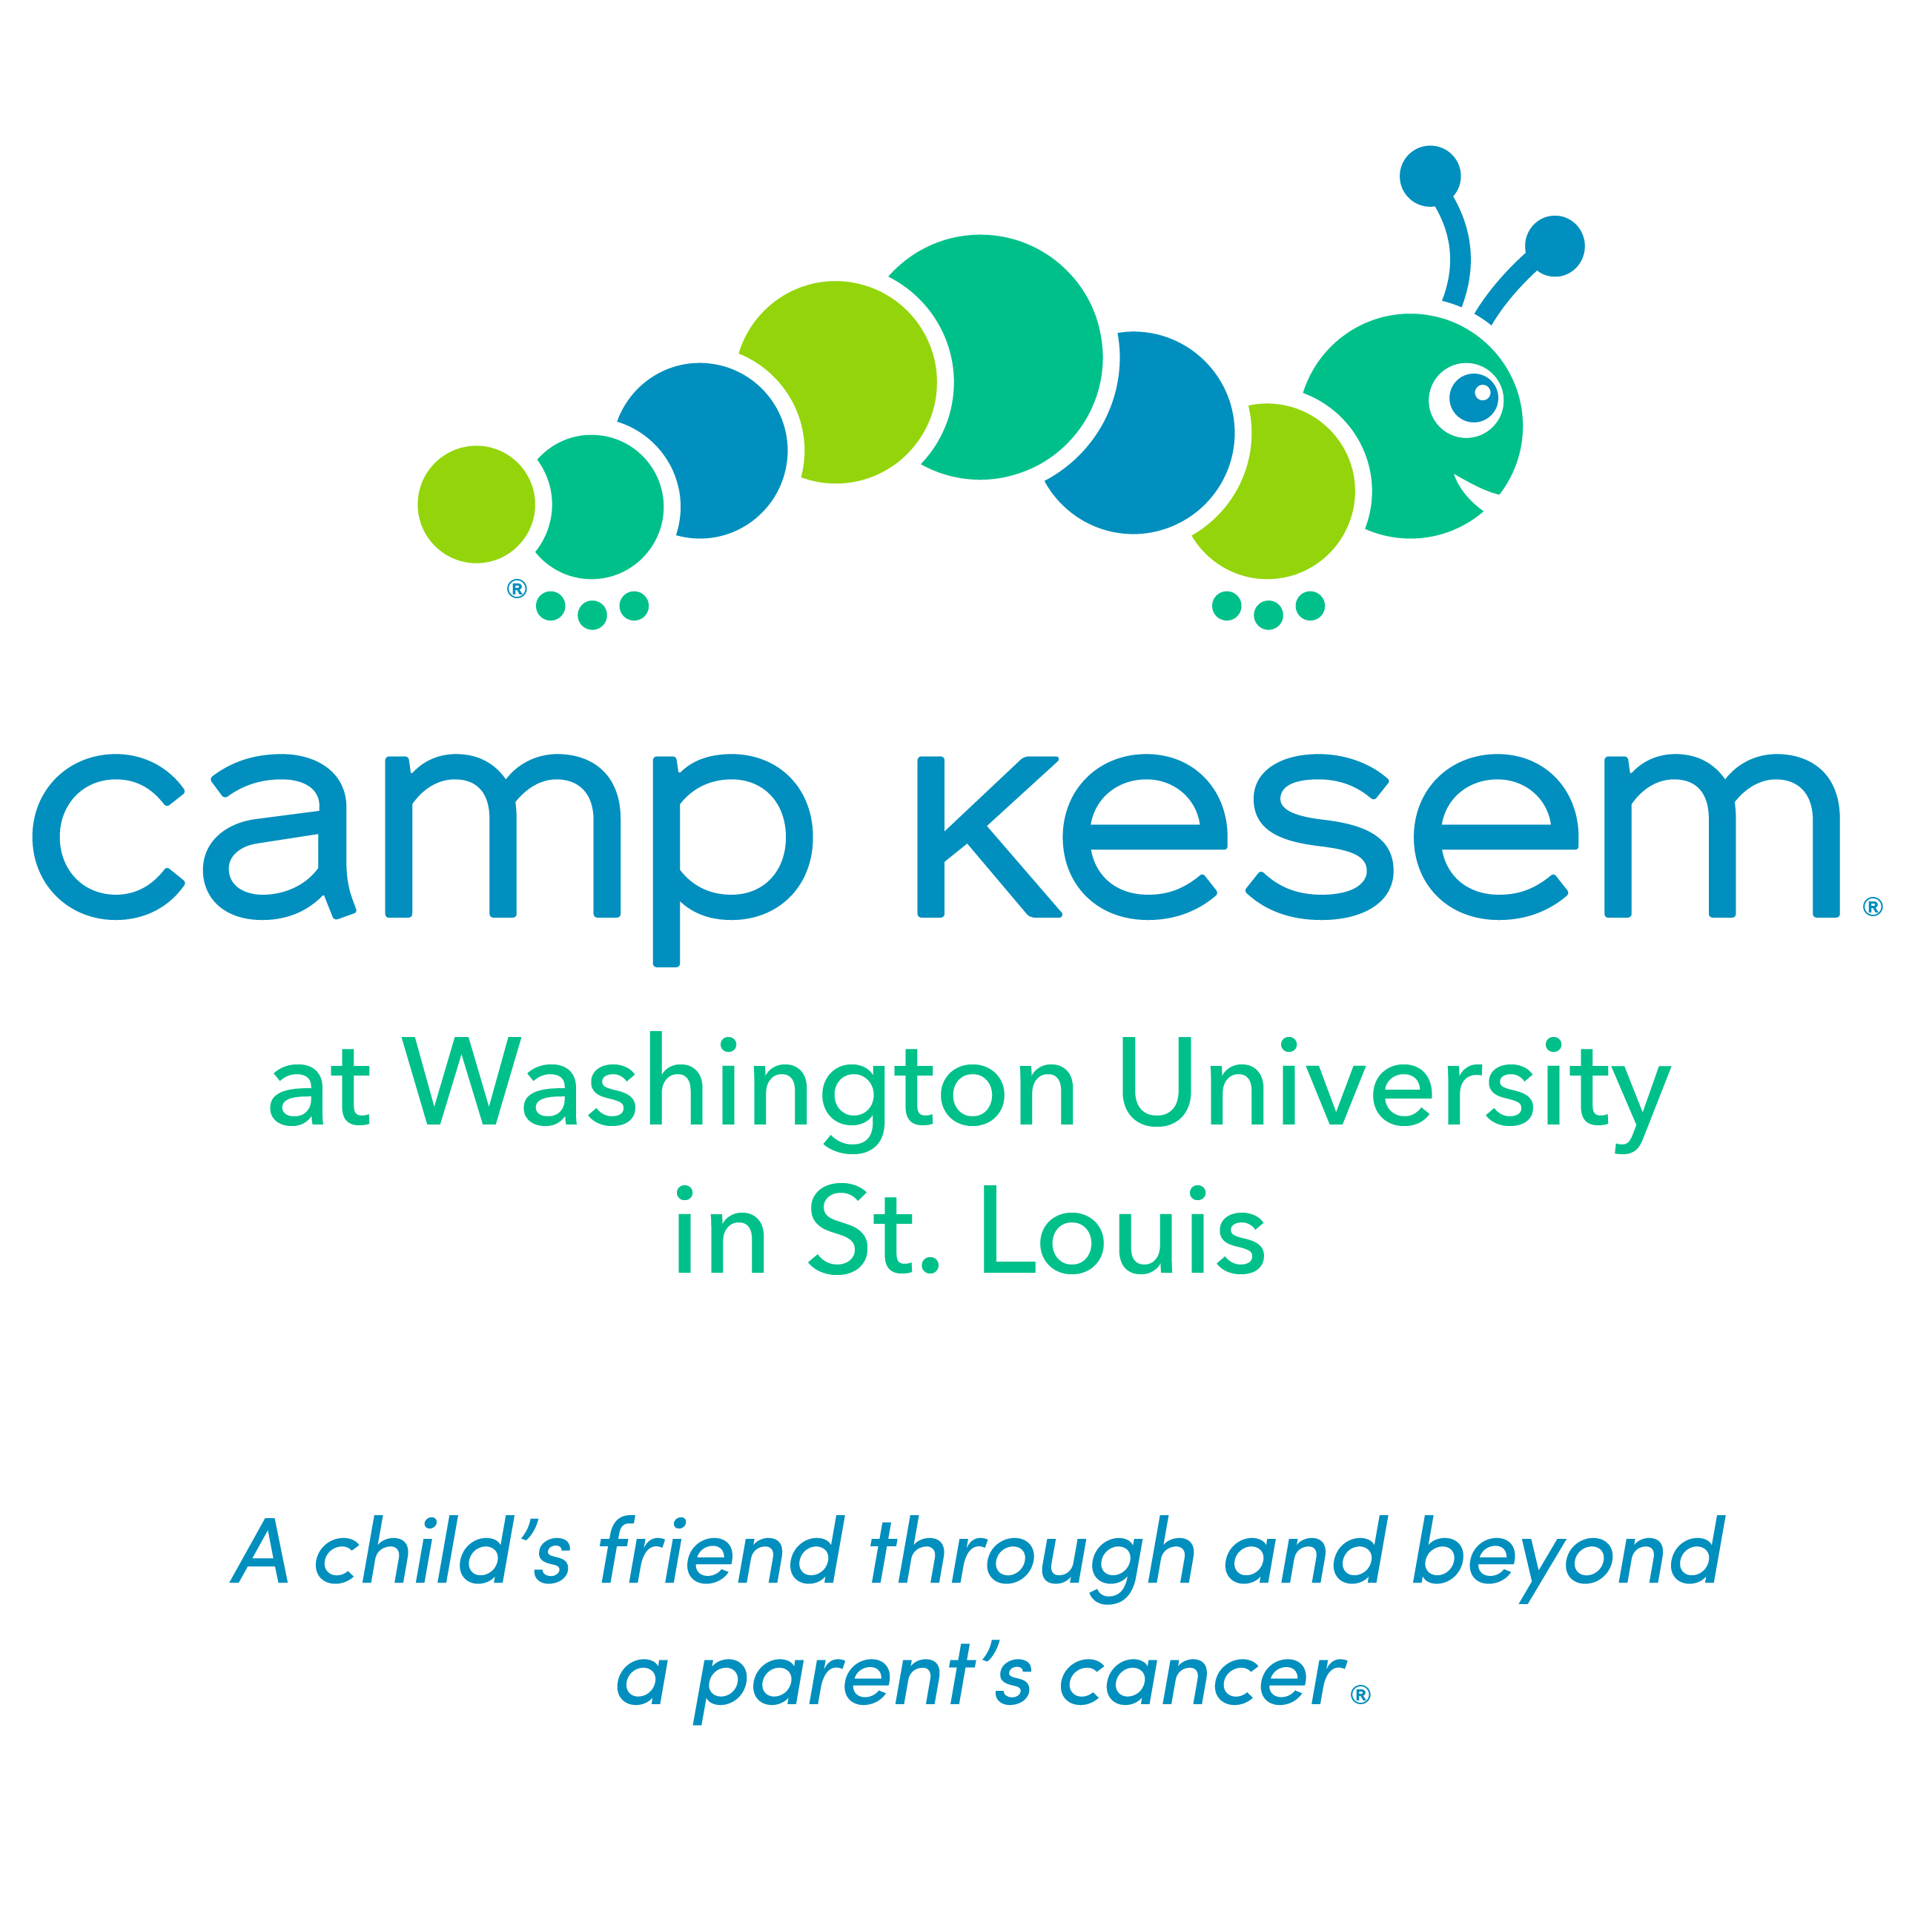 Camp Kesem at Washington University in St. Louis